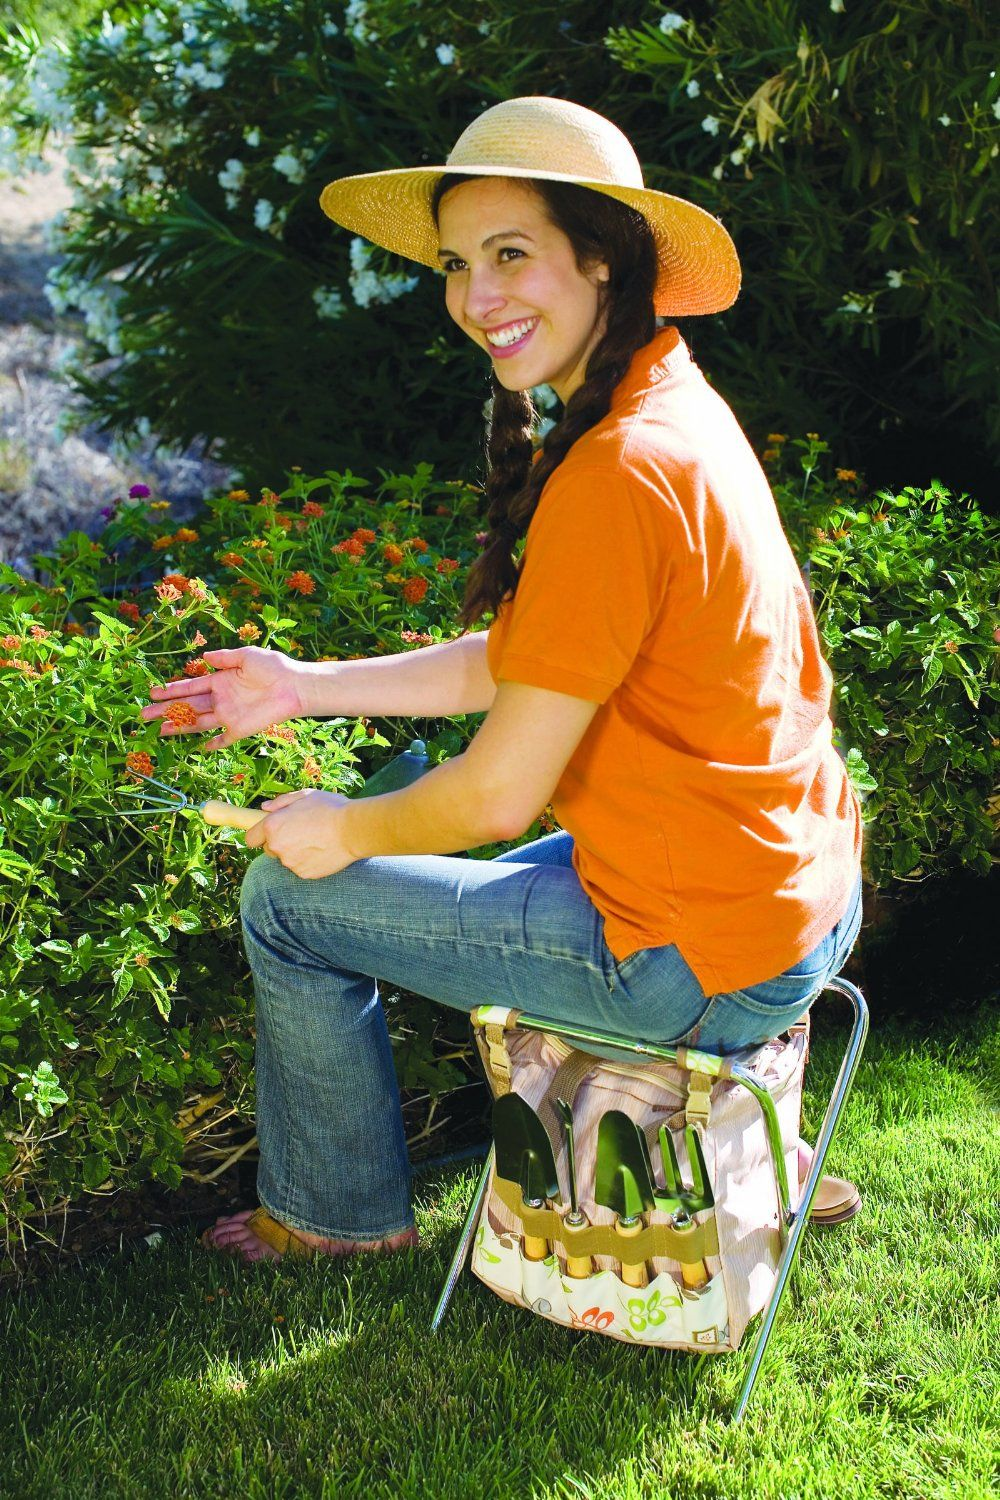 Picnictime Gardener Chair And Tools Set